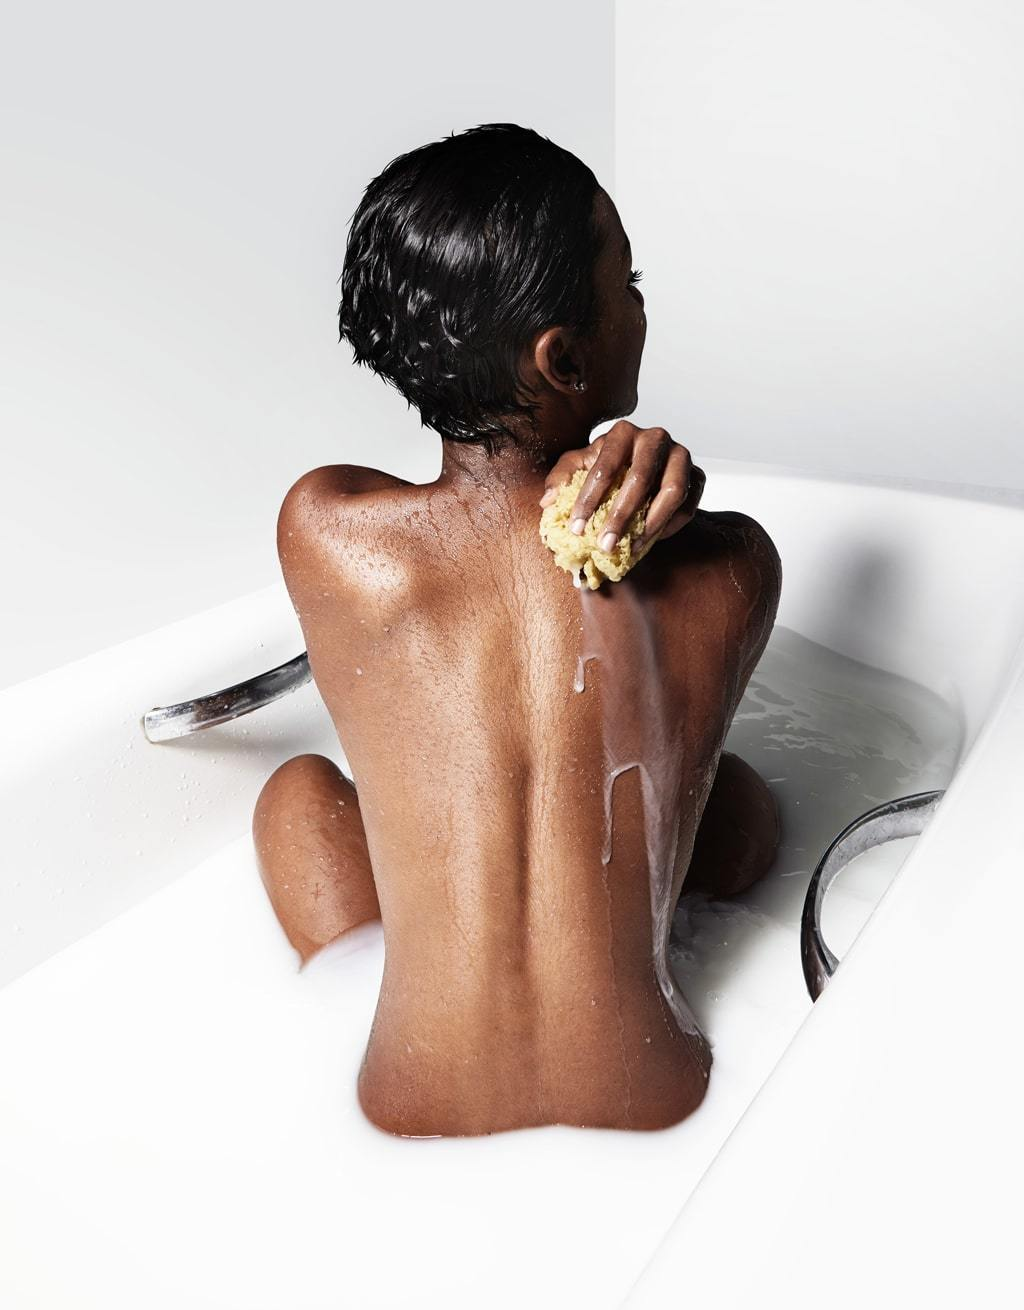 African American Woman In A Bath of Milk Wih Her Back Exposed Signifying The Appeal of A Man Finishing Inside